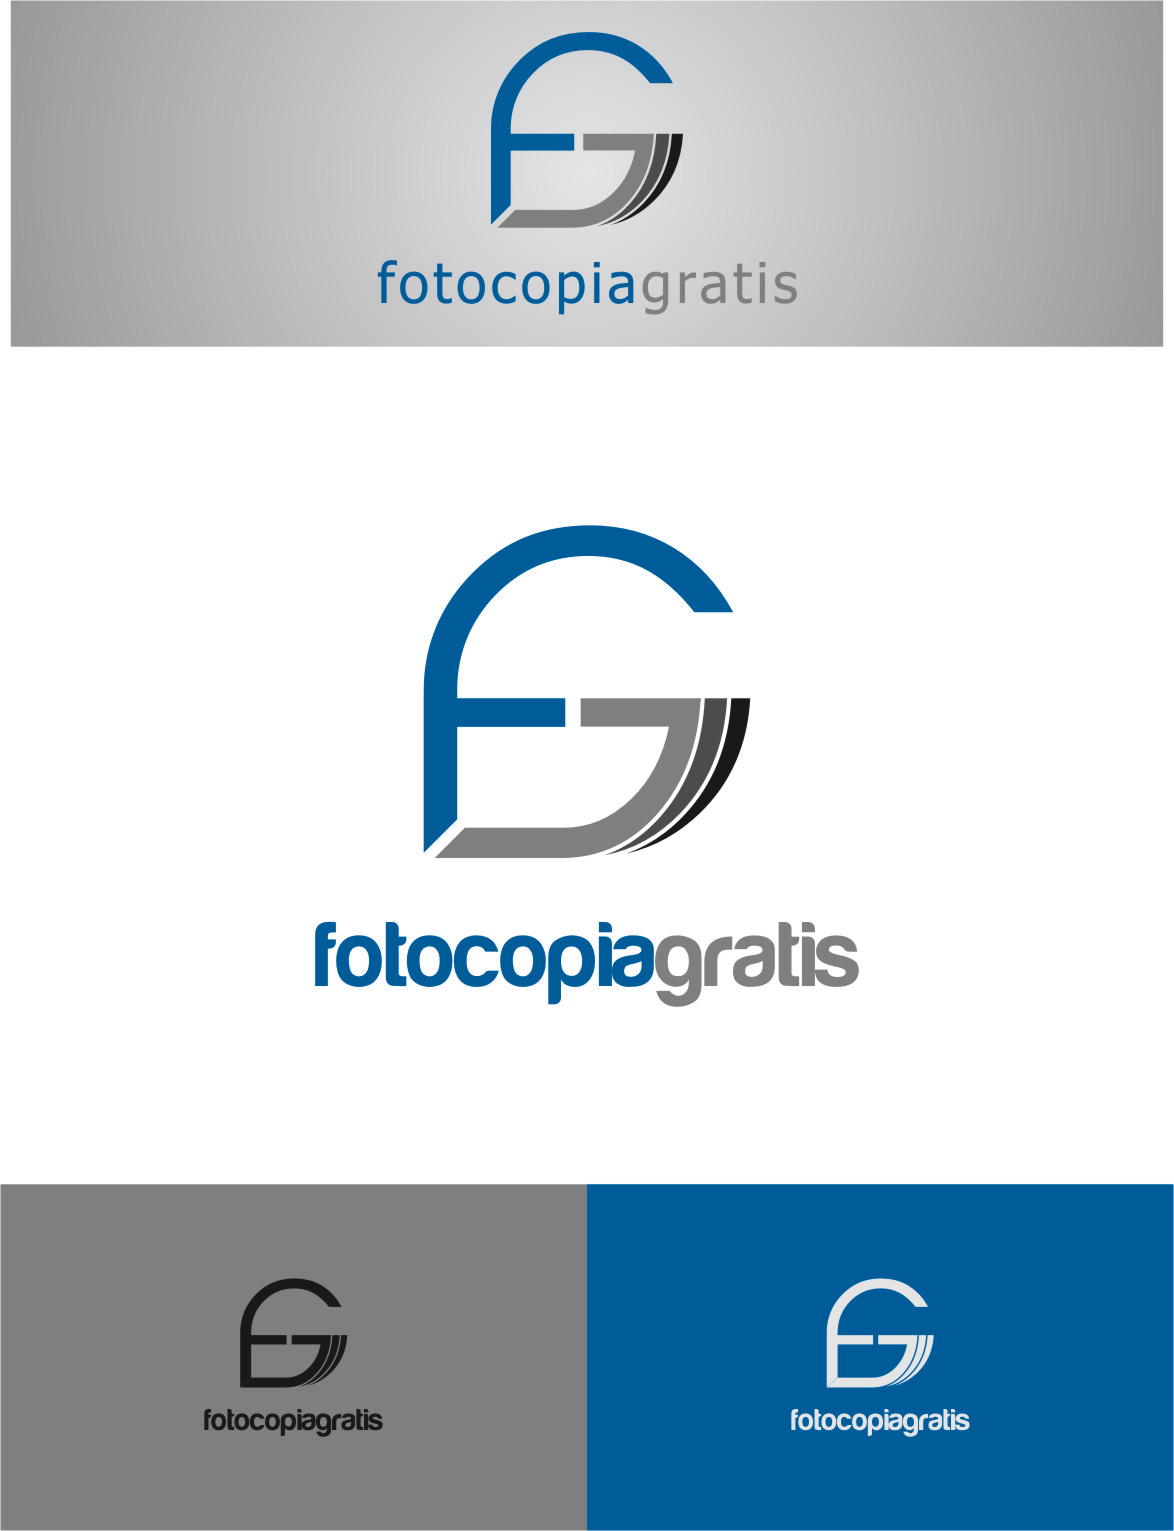 Logo Design by Ngepet_art - Entry No. 127 in the Logo Design Contest Inspiring Logo Design for Fotocopiagratis.